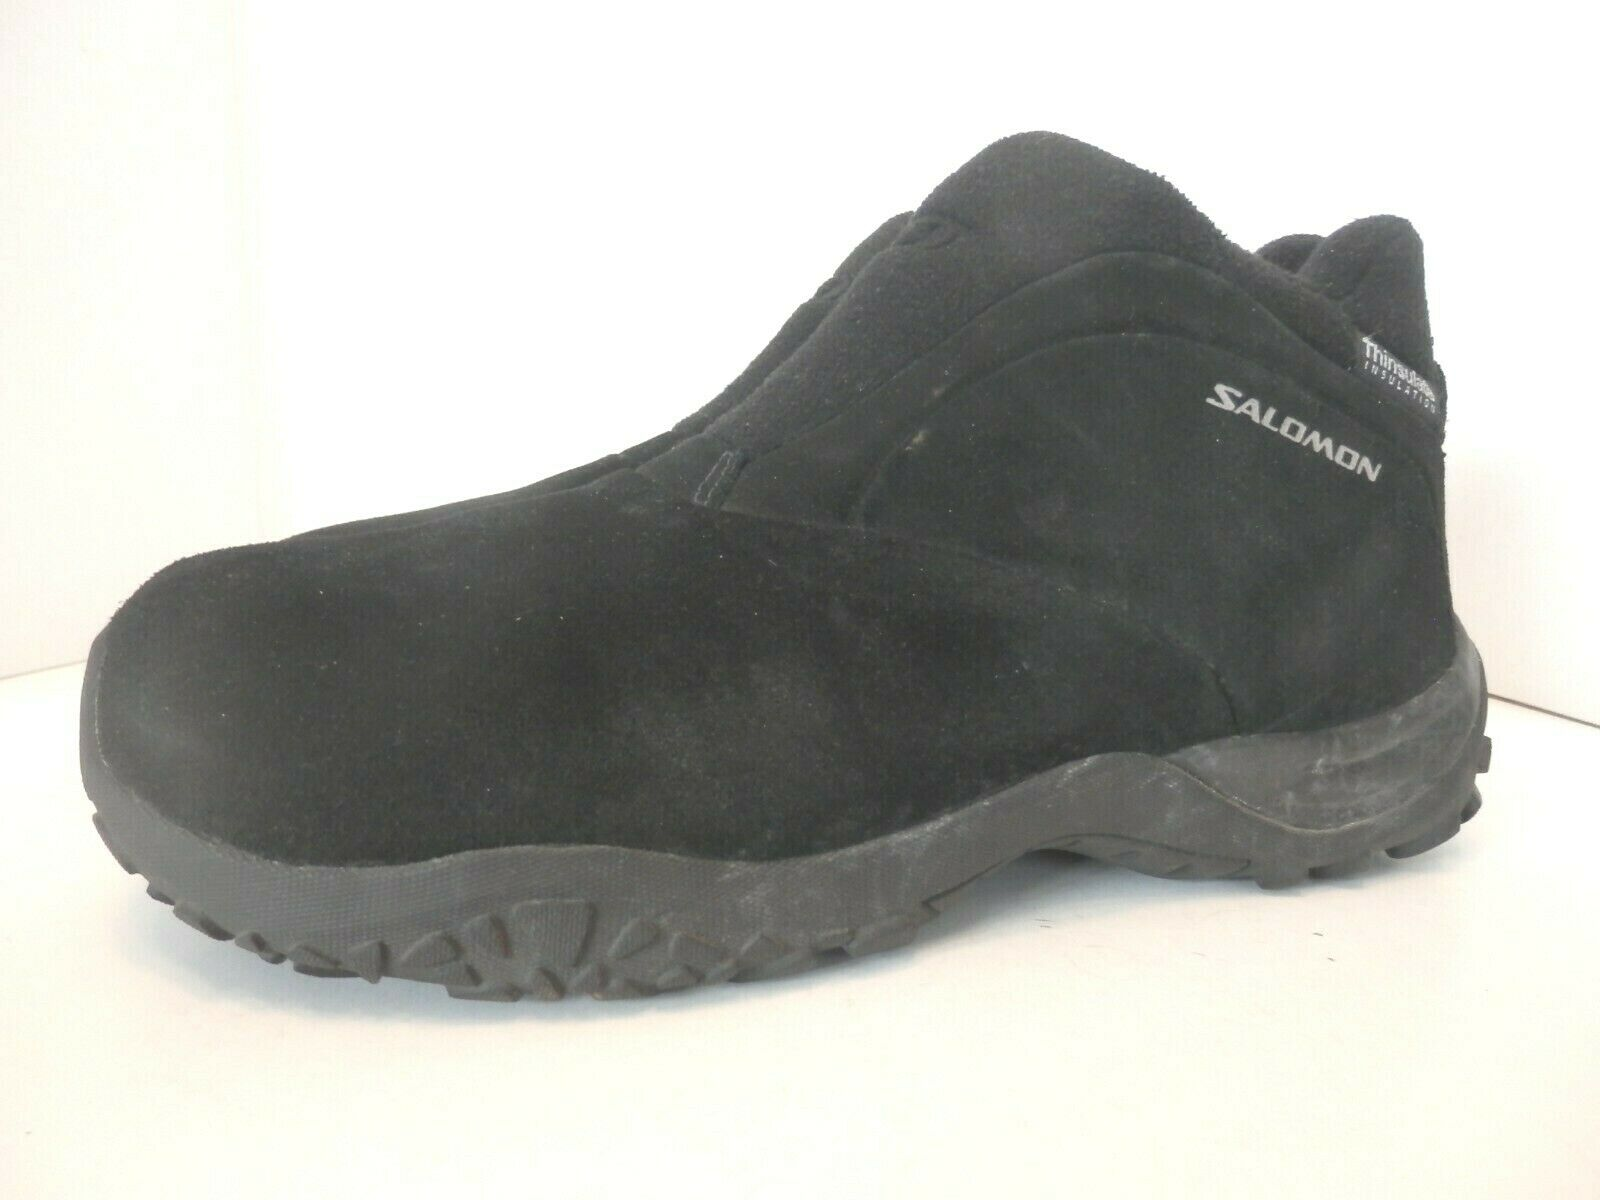 Salomon Black Suede Leather Thinsulate Slip On Trail shoes-EUC-Mens 11-FS